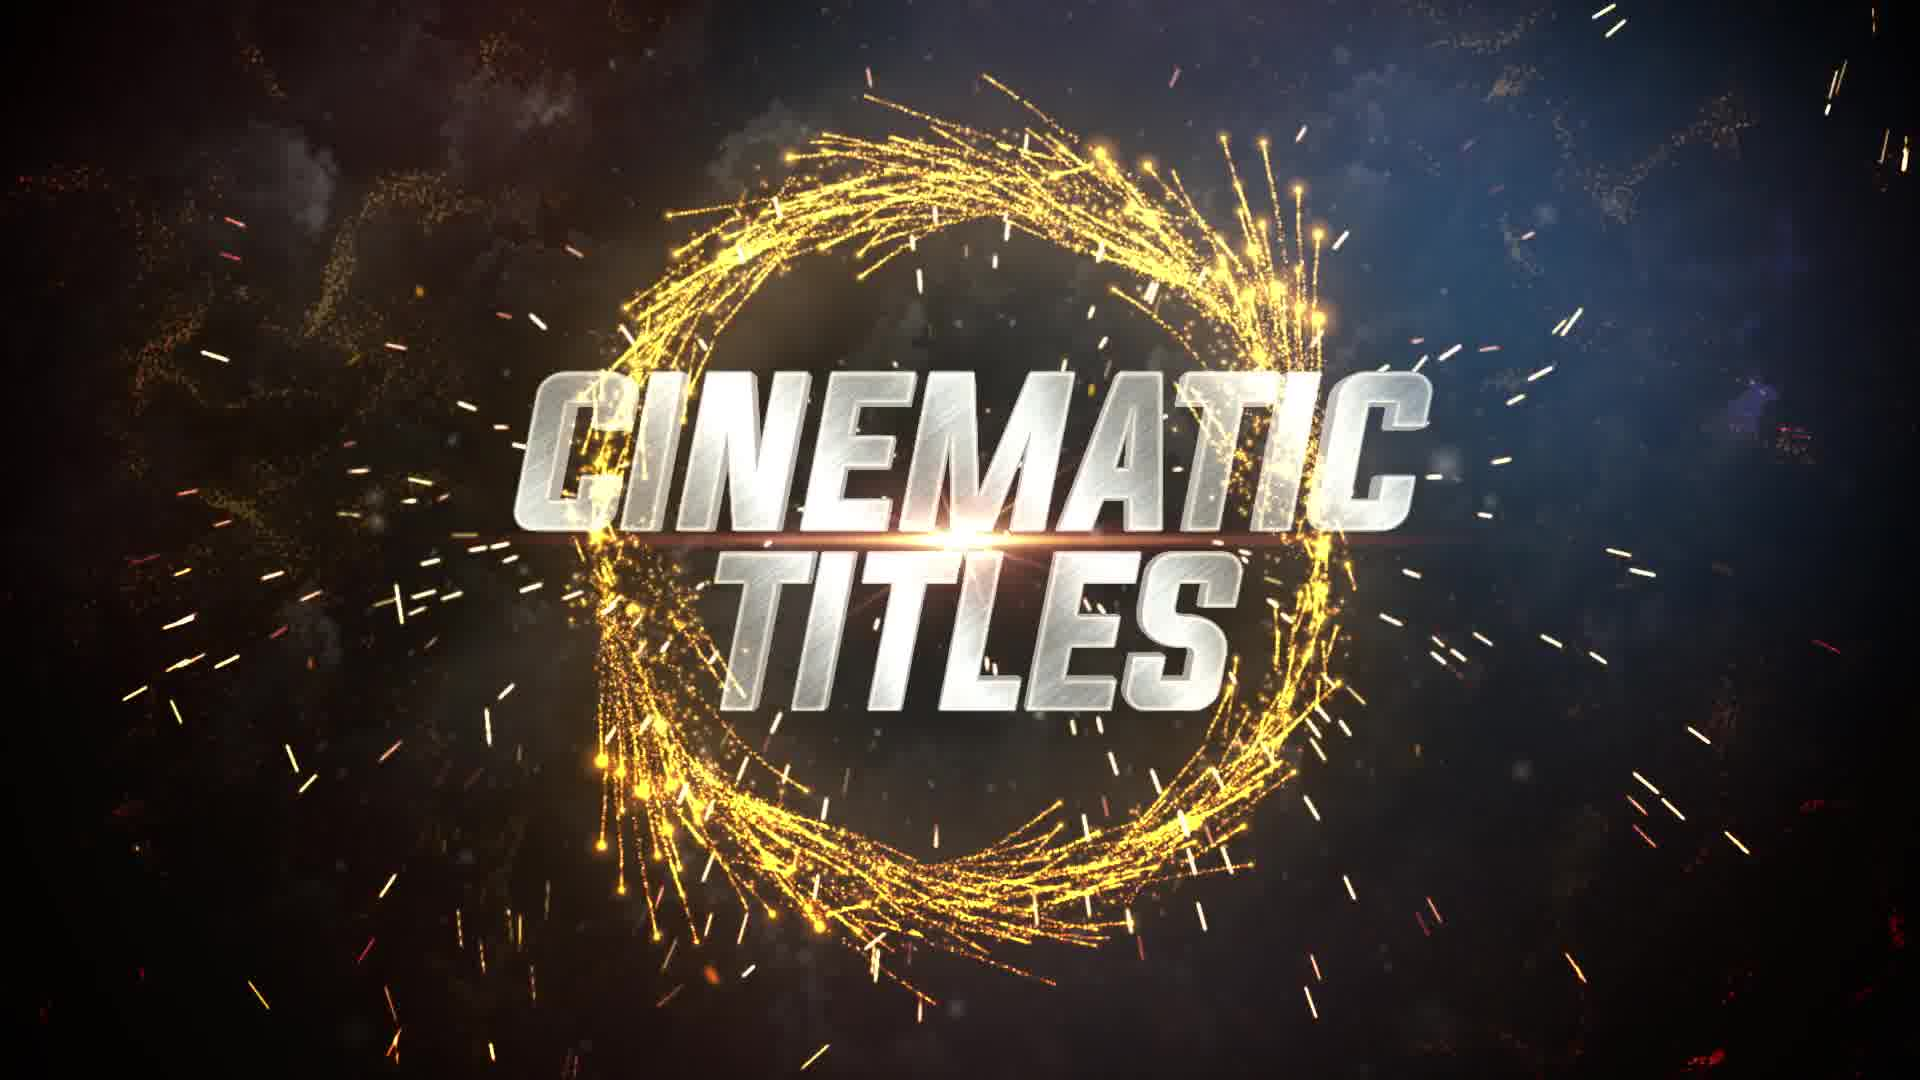 Cinematic Trailer Titles Premiere Pro Videohive 24601841 Premiere Pro Image 11